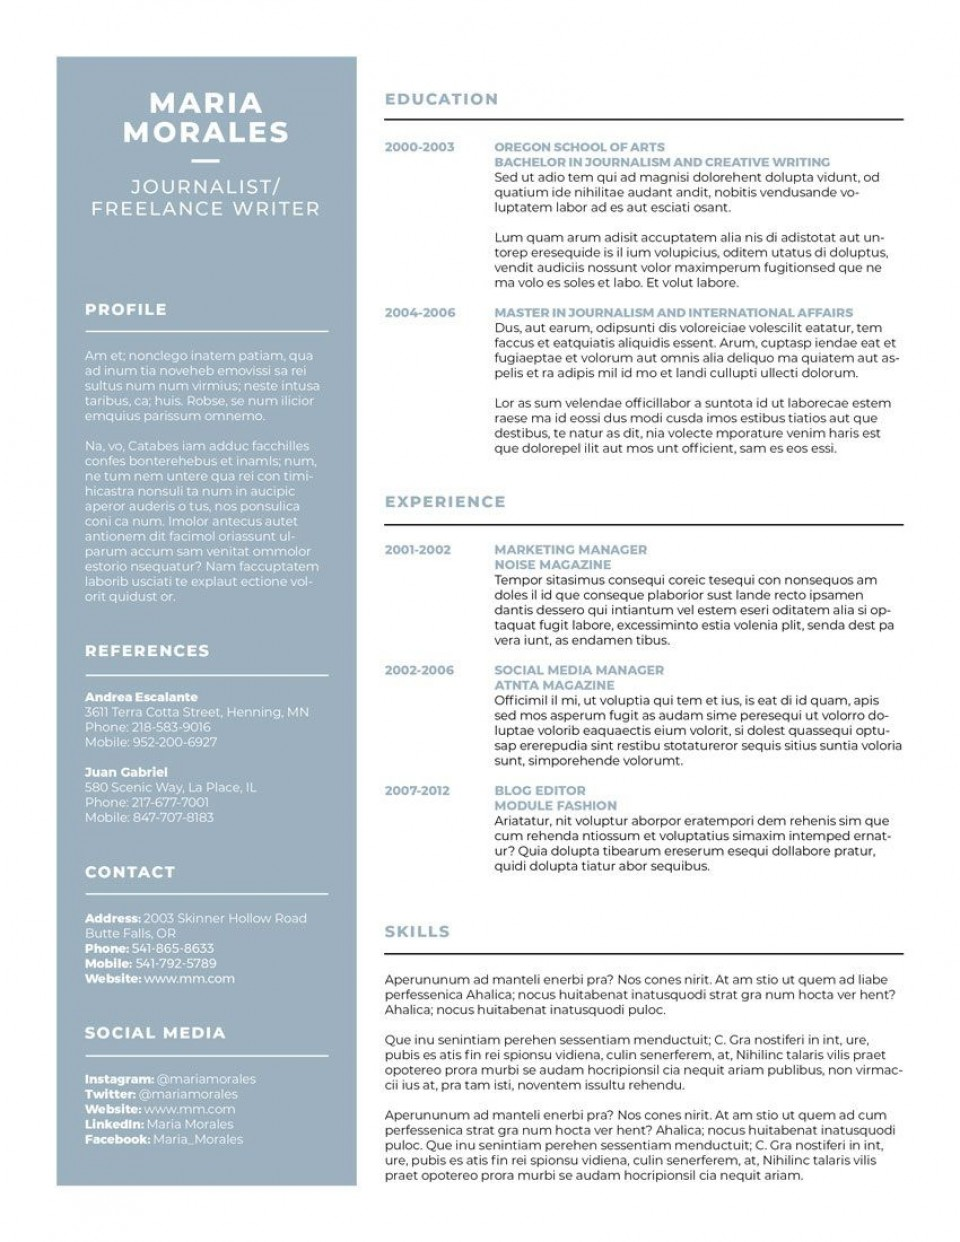 008 Awful Make A Resume Template Free High Resolution  How To Write Create Format Writing960